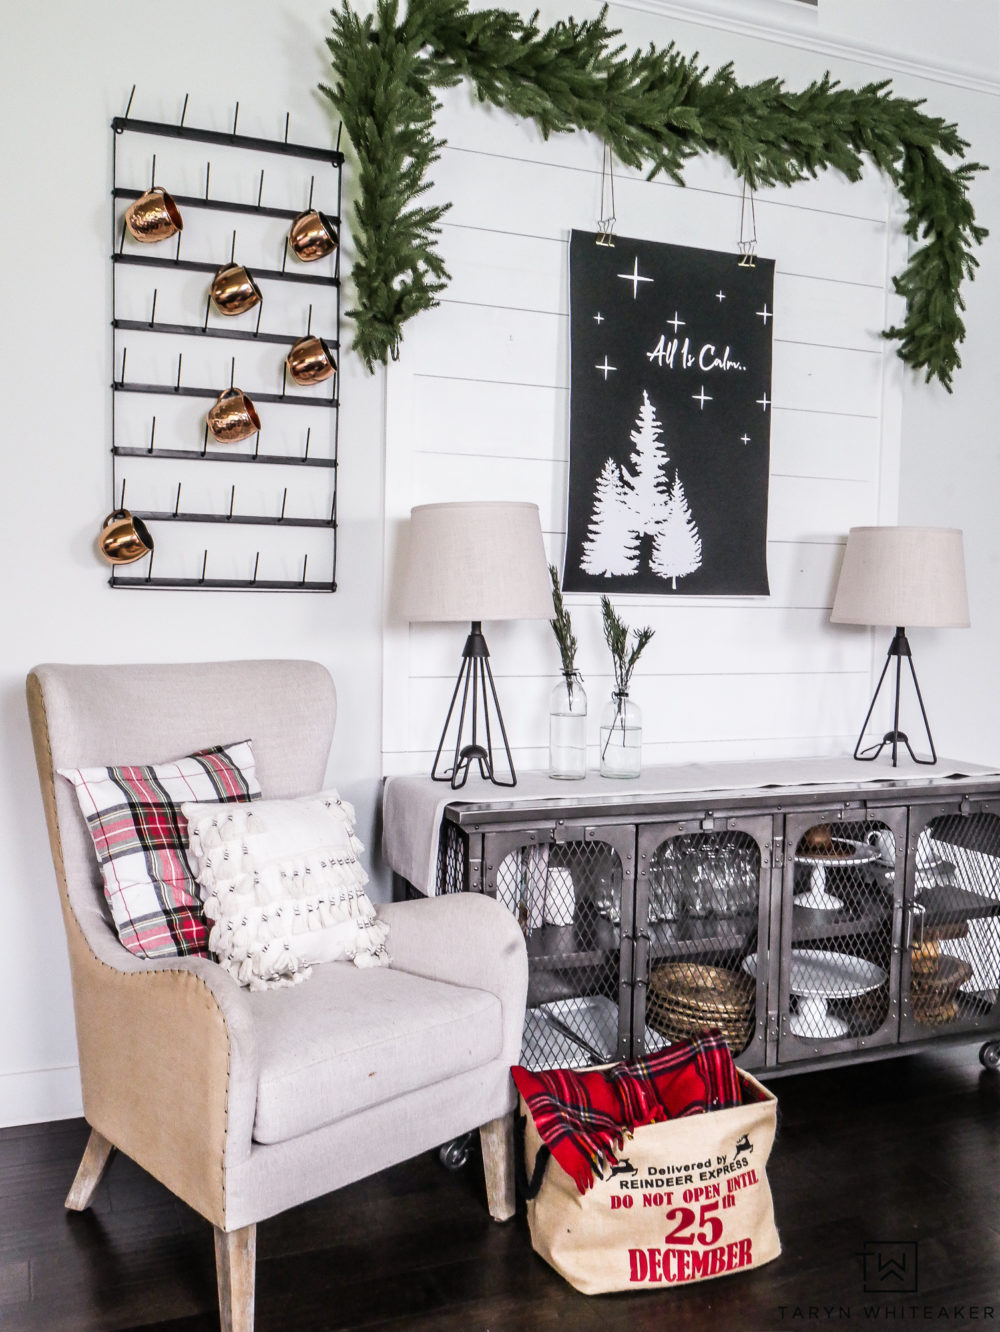 Cozy and modern Christmas display with greenery and pops of plaid!